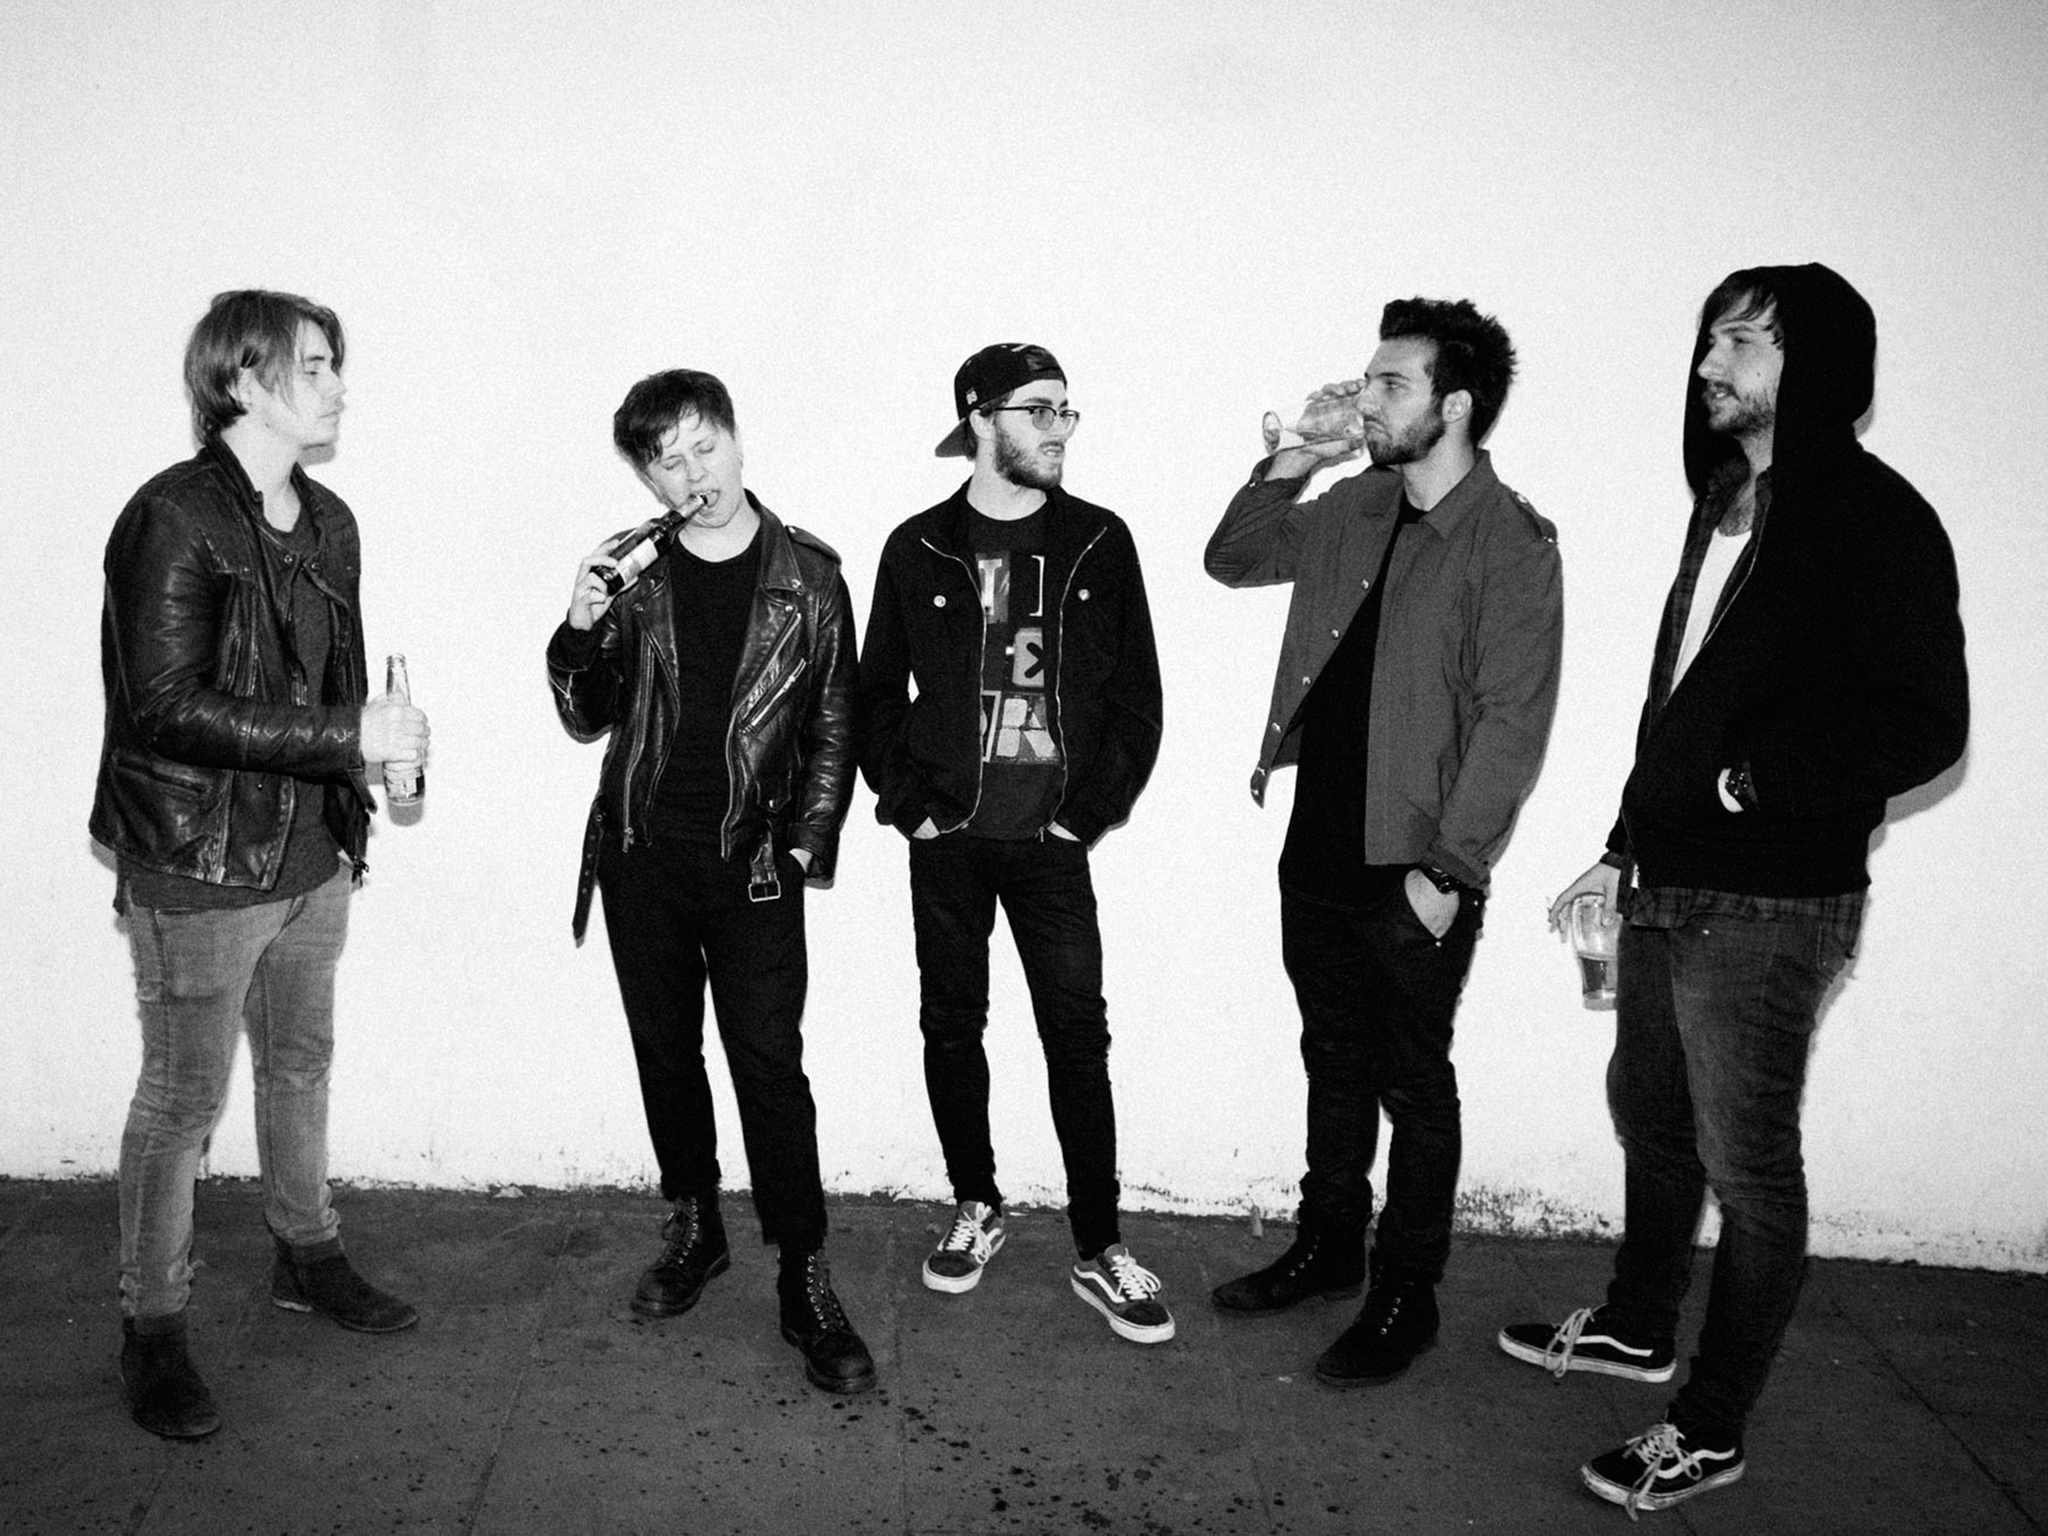 B&w shot of Nothing But THieves